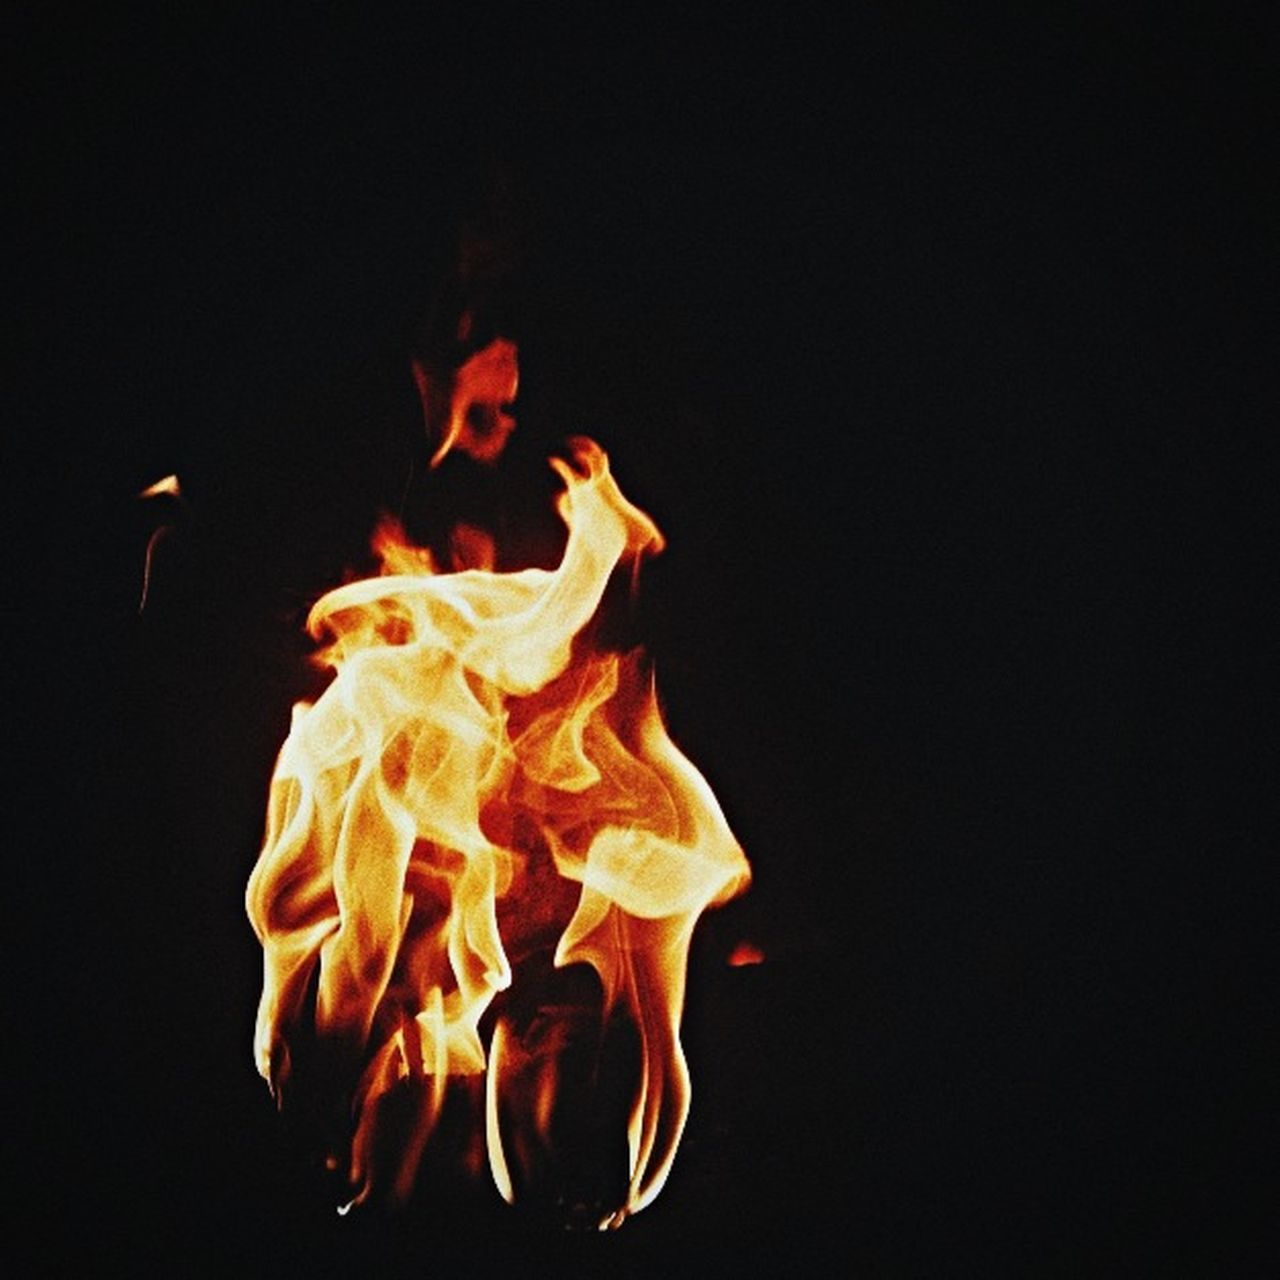 """""""Have a heart burning fire Spread love all through the night And feel love every time Cause music makes me feel alive!"""" ?♥️? Love Alight Crystal Fighters"""